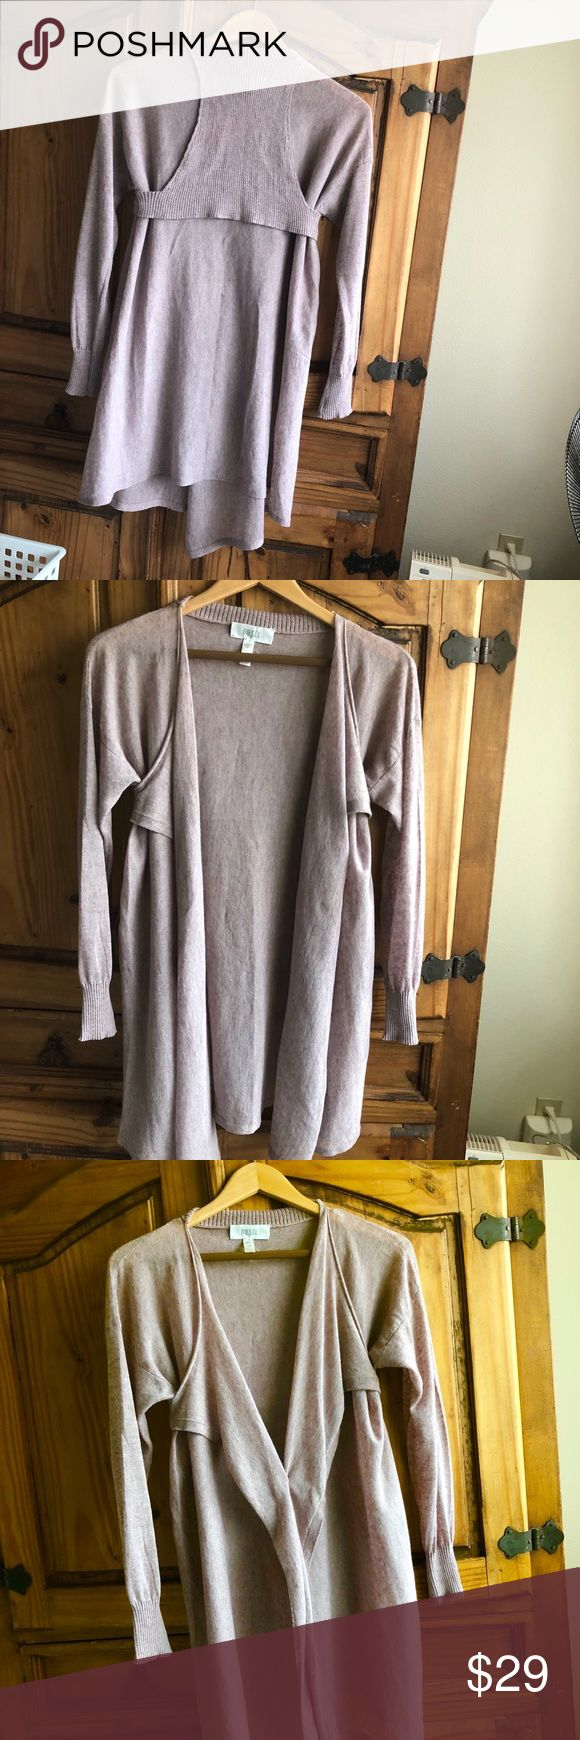 "Diesel  soft pink sweater, Sz Small, Like New Beautiful Diesel sweater in a textured light pink. Throw over a T to stay cozy warm. Or dress it up with a cami, long necklace and skinny pants. Beautiful layering in the back. This is in ""like new"" condition. Hand wash in cold. Diesel Sweaters Cardigans"